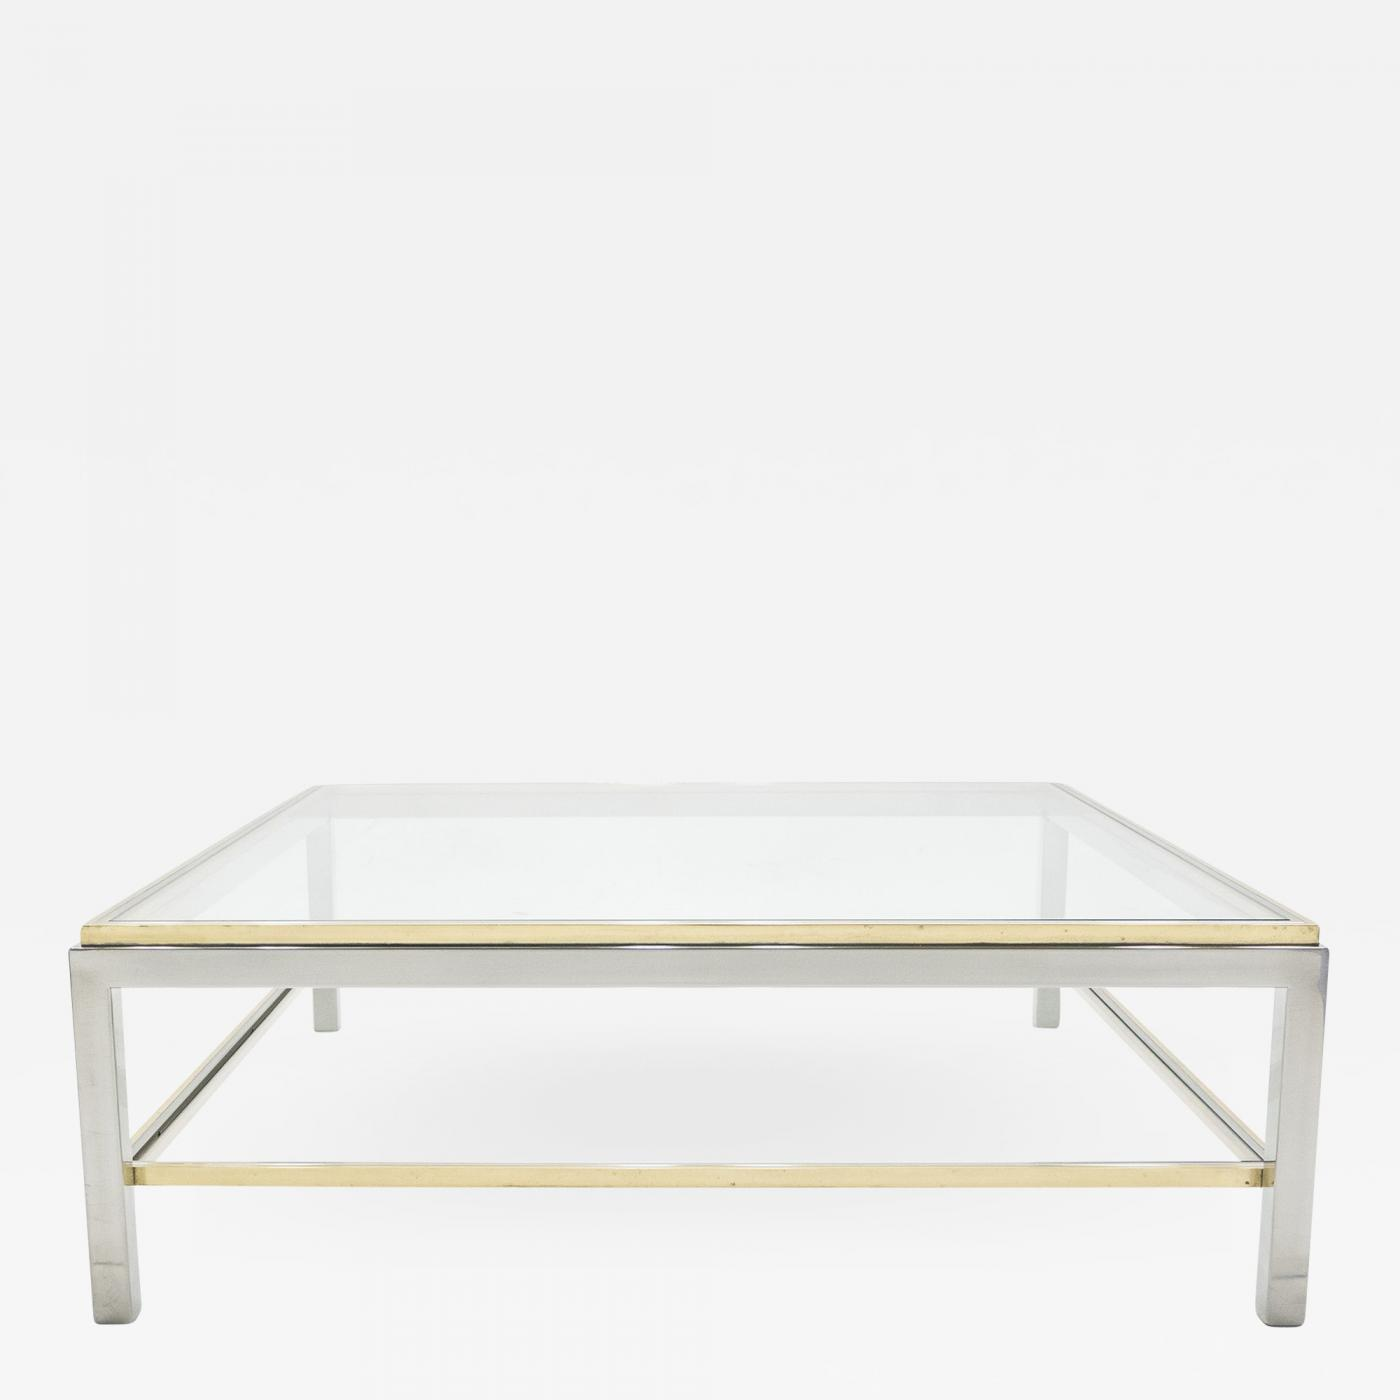 willy rizzo large square two tier brass chrome coffee table willy rizzo flaminia 1970s